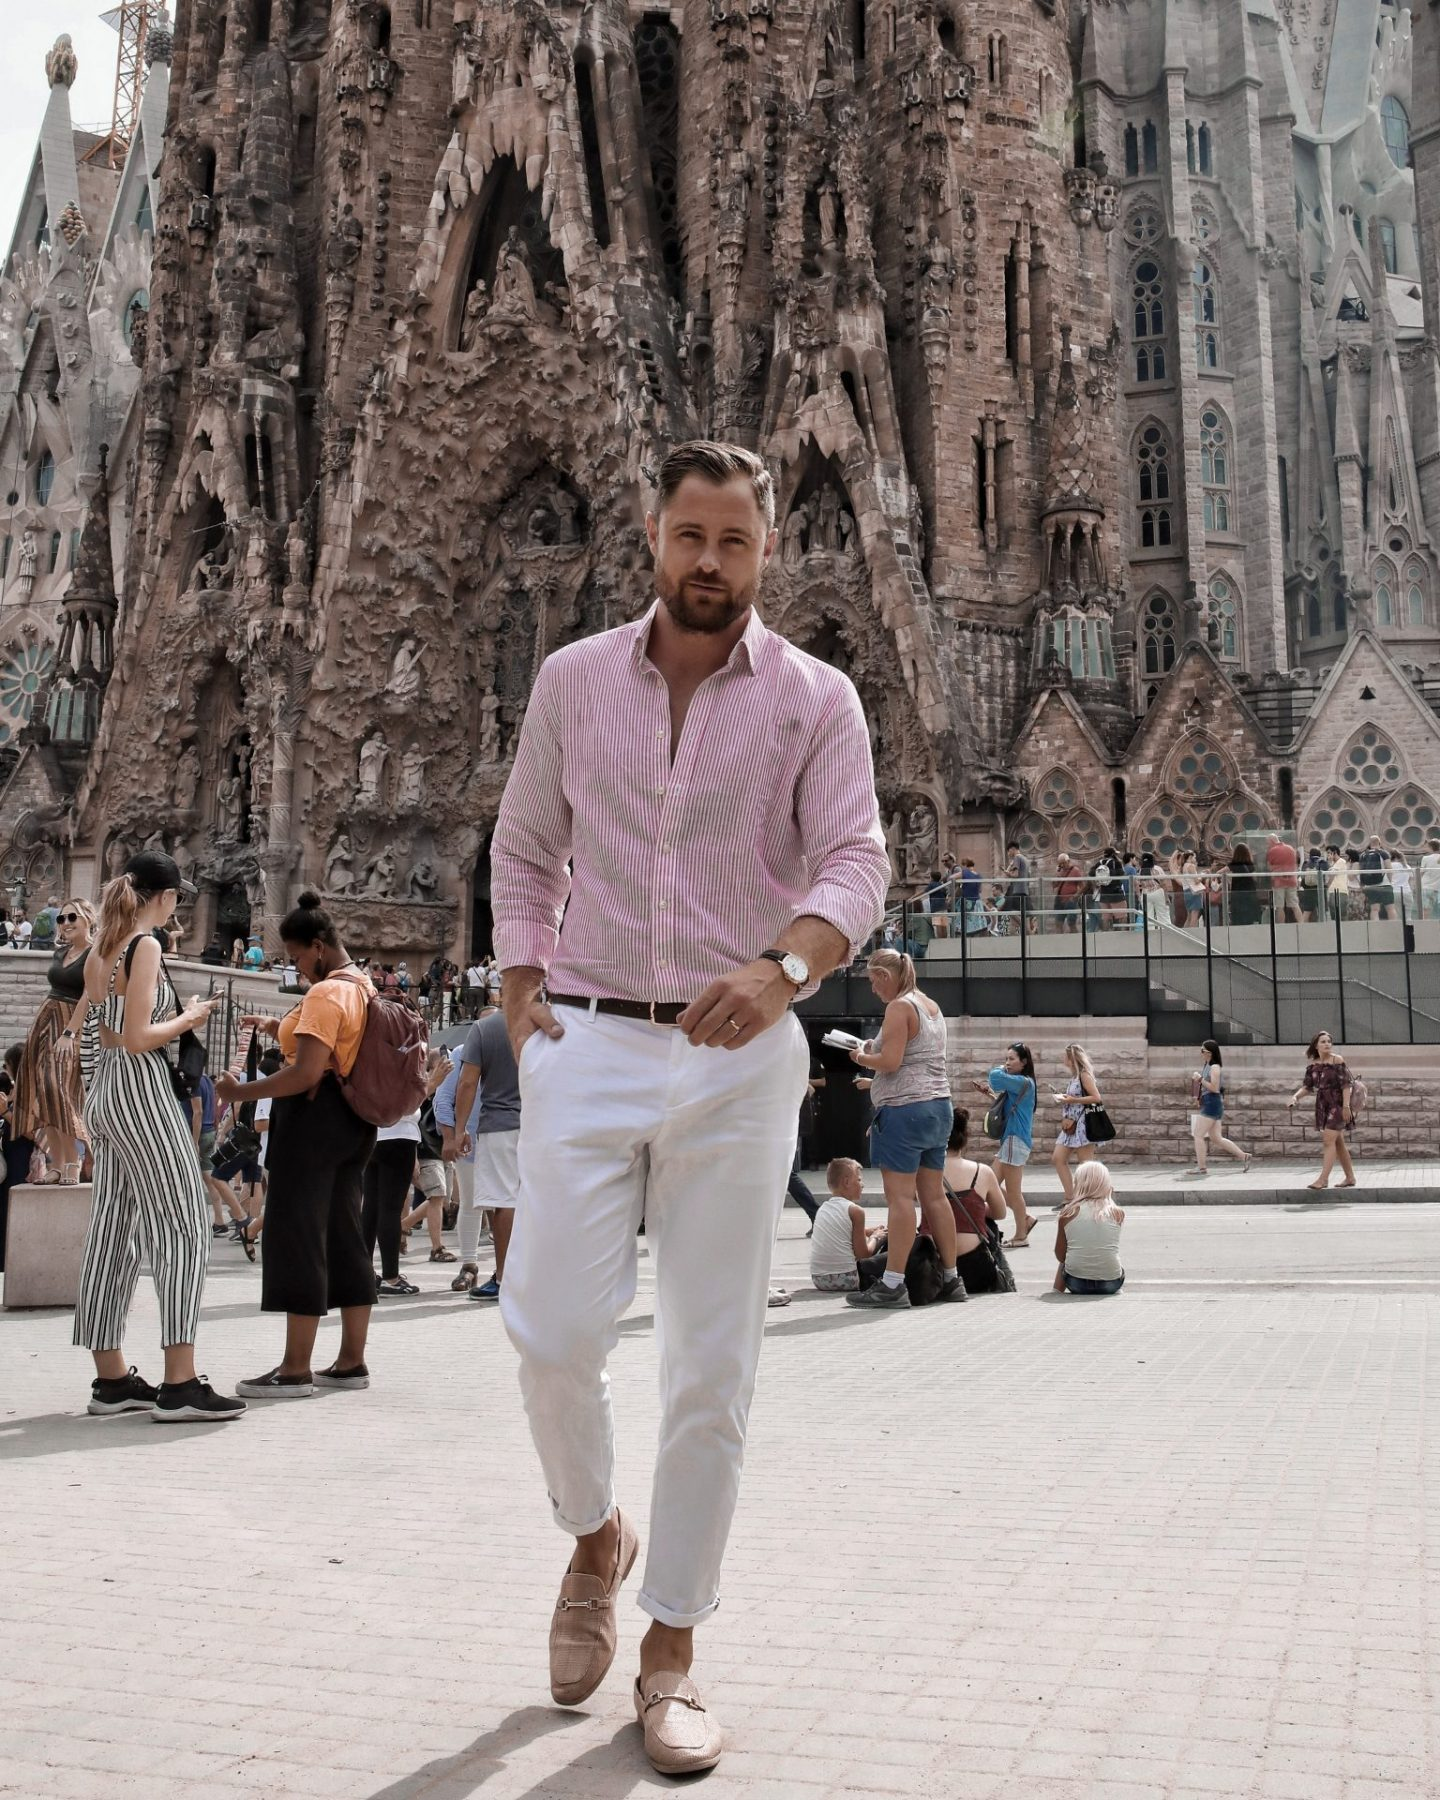 Barcelona City Guide Twenty First Century Gent